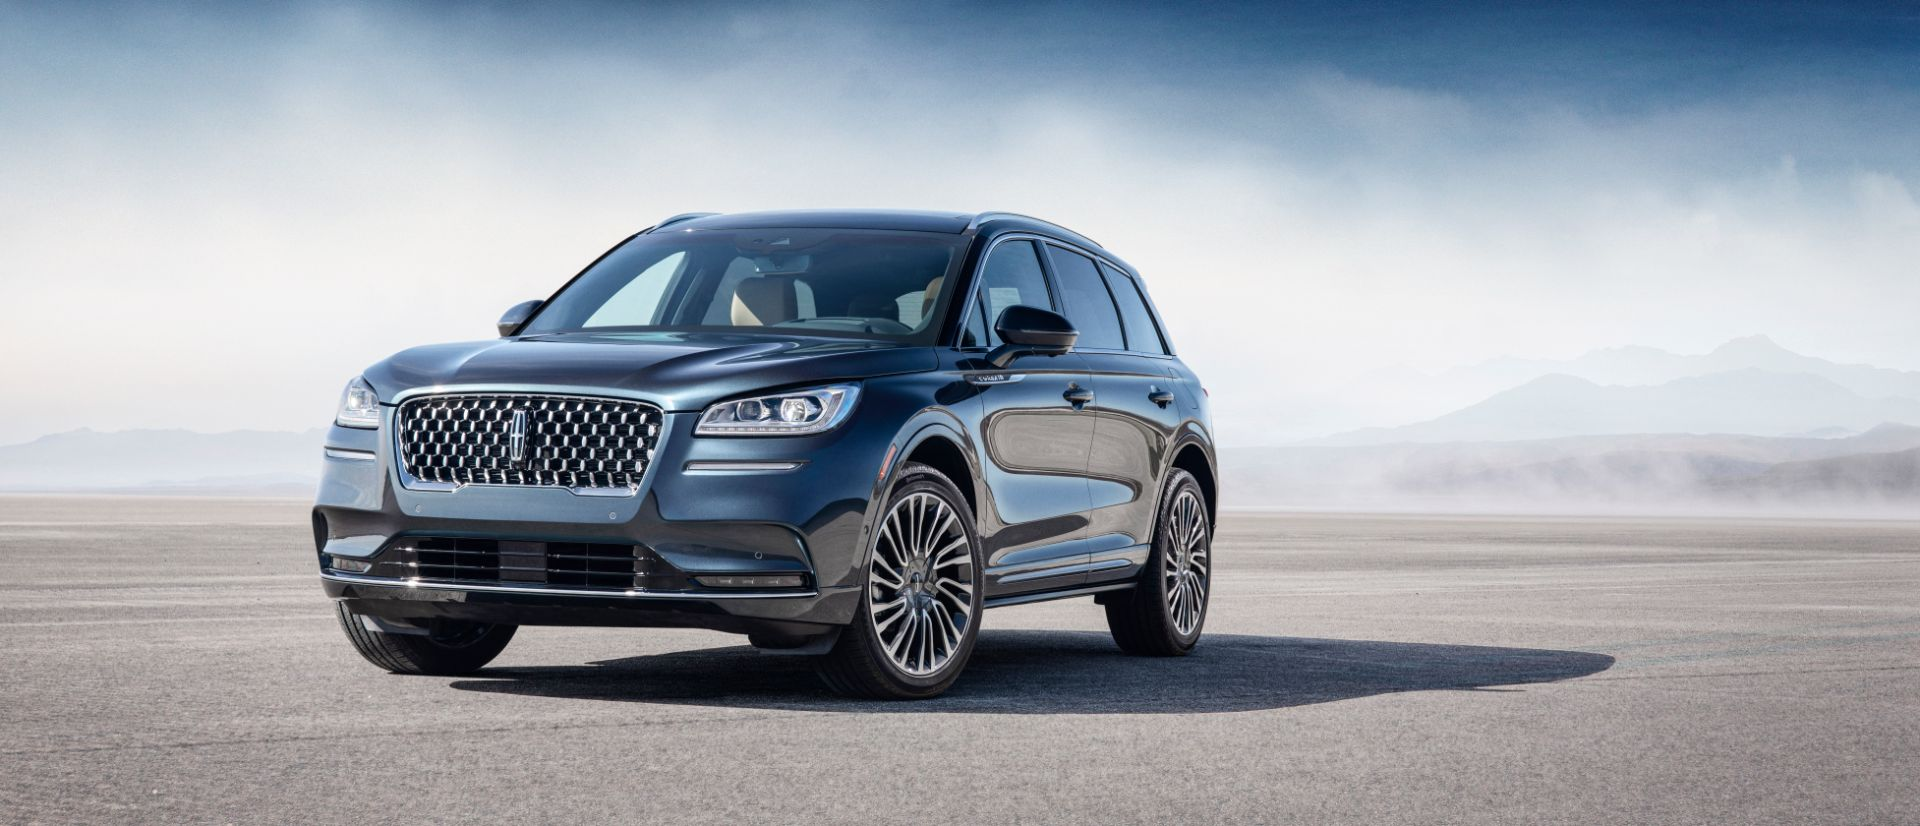 2020 Lincoln Corsair preview